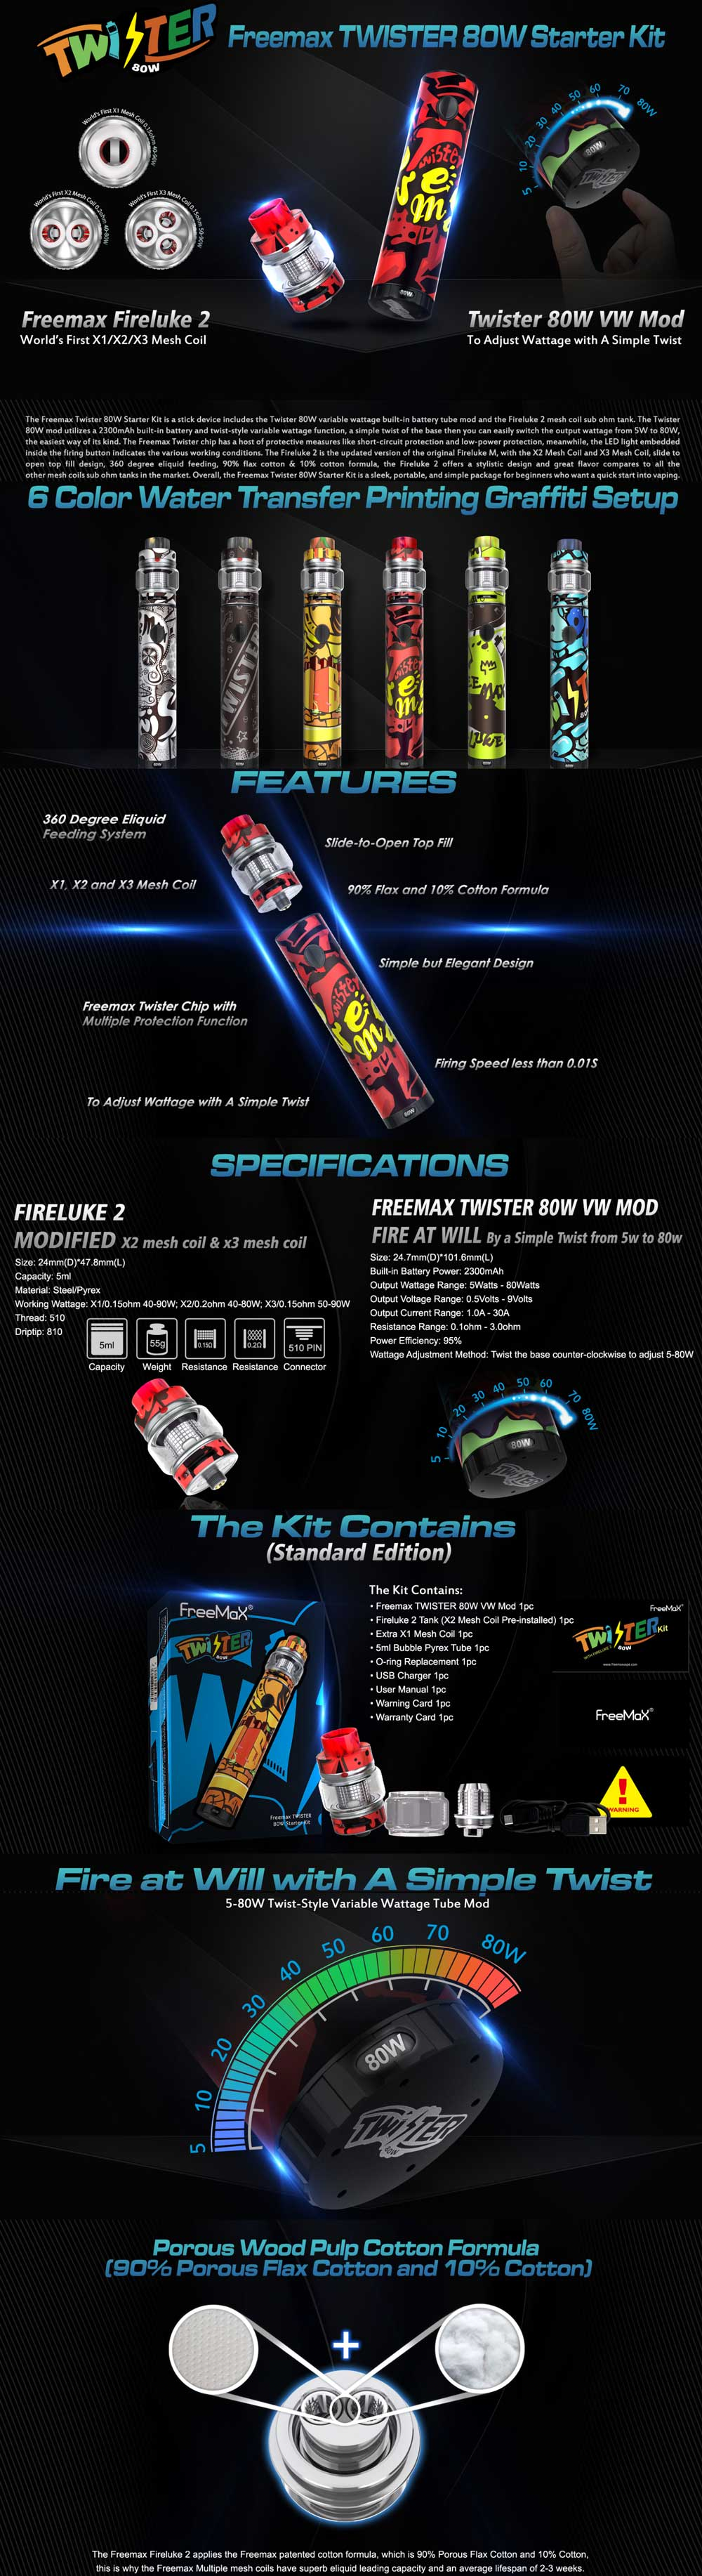 Freemax Twister Kit with full descriptions and diagrams